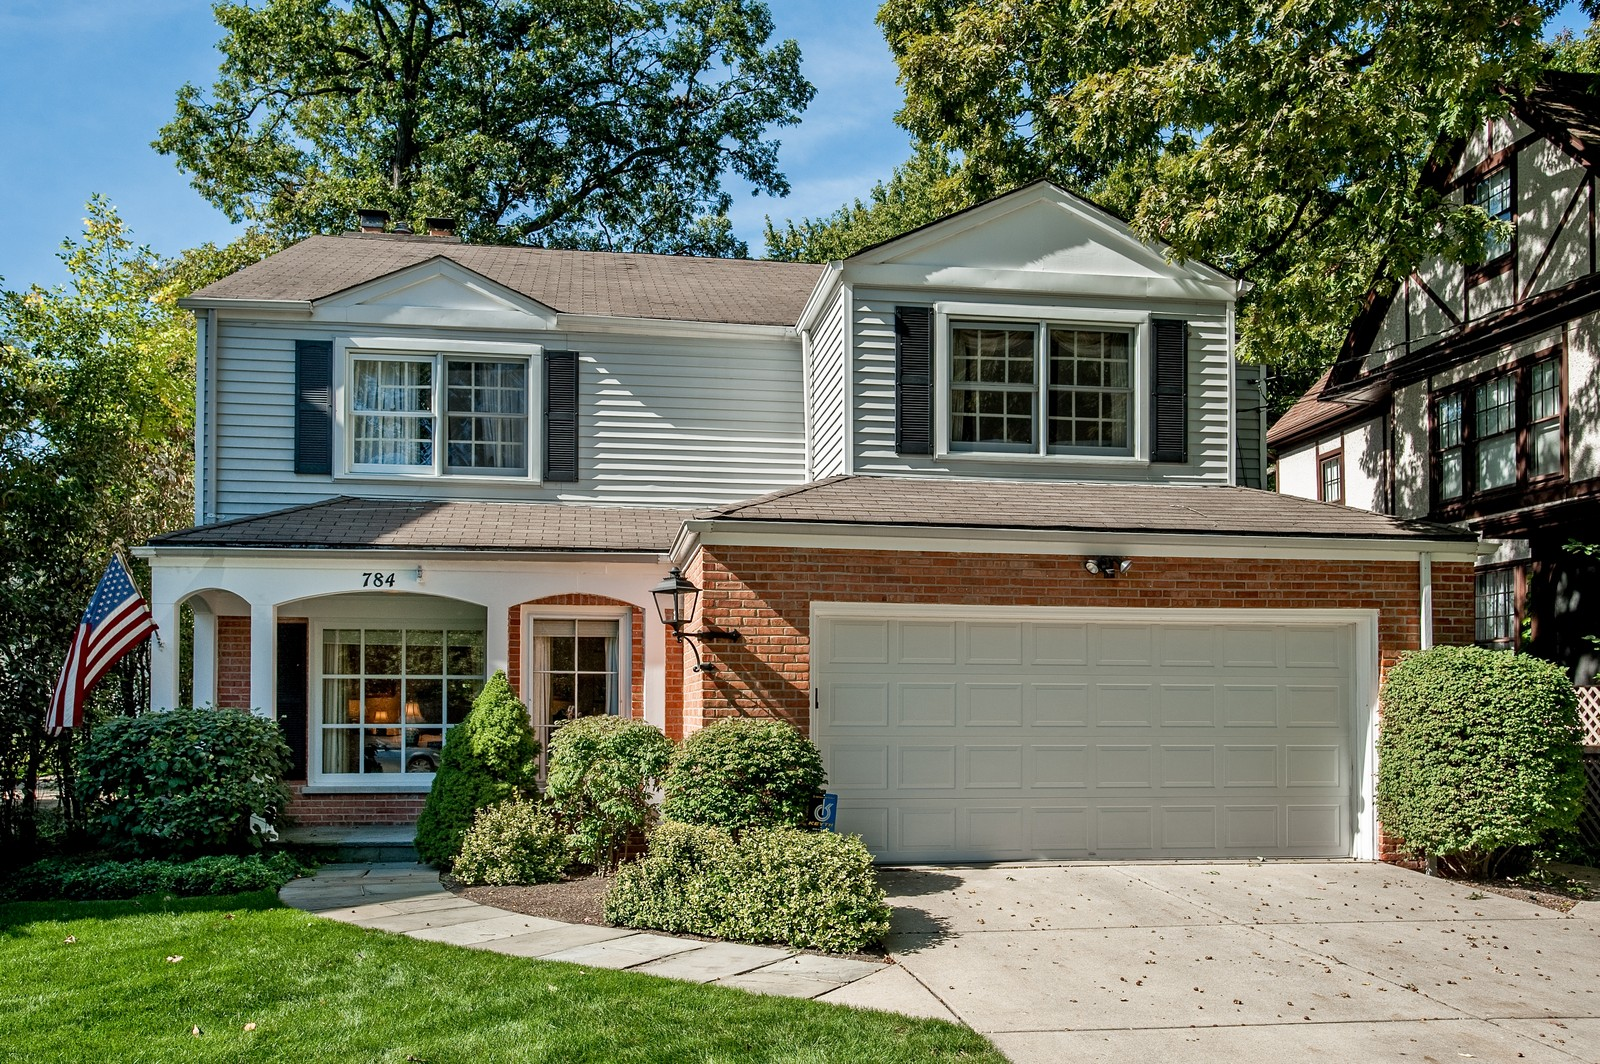 Real Estate Photography - 784 Lincoln Avenue, Winnetka, IL, 60093 - Front View